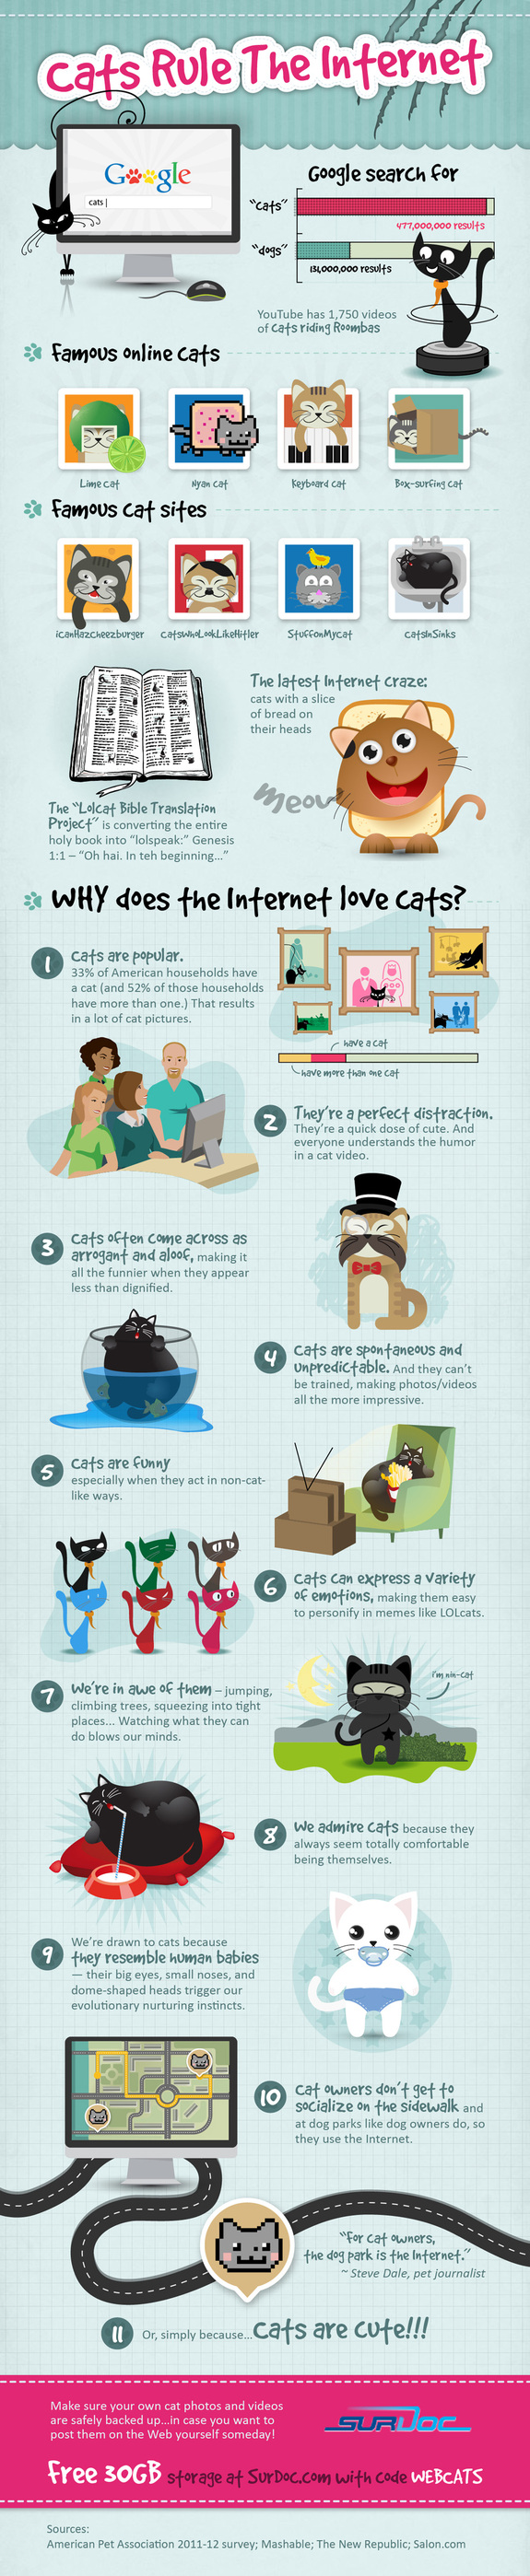 Cats Rule the Internet infographic